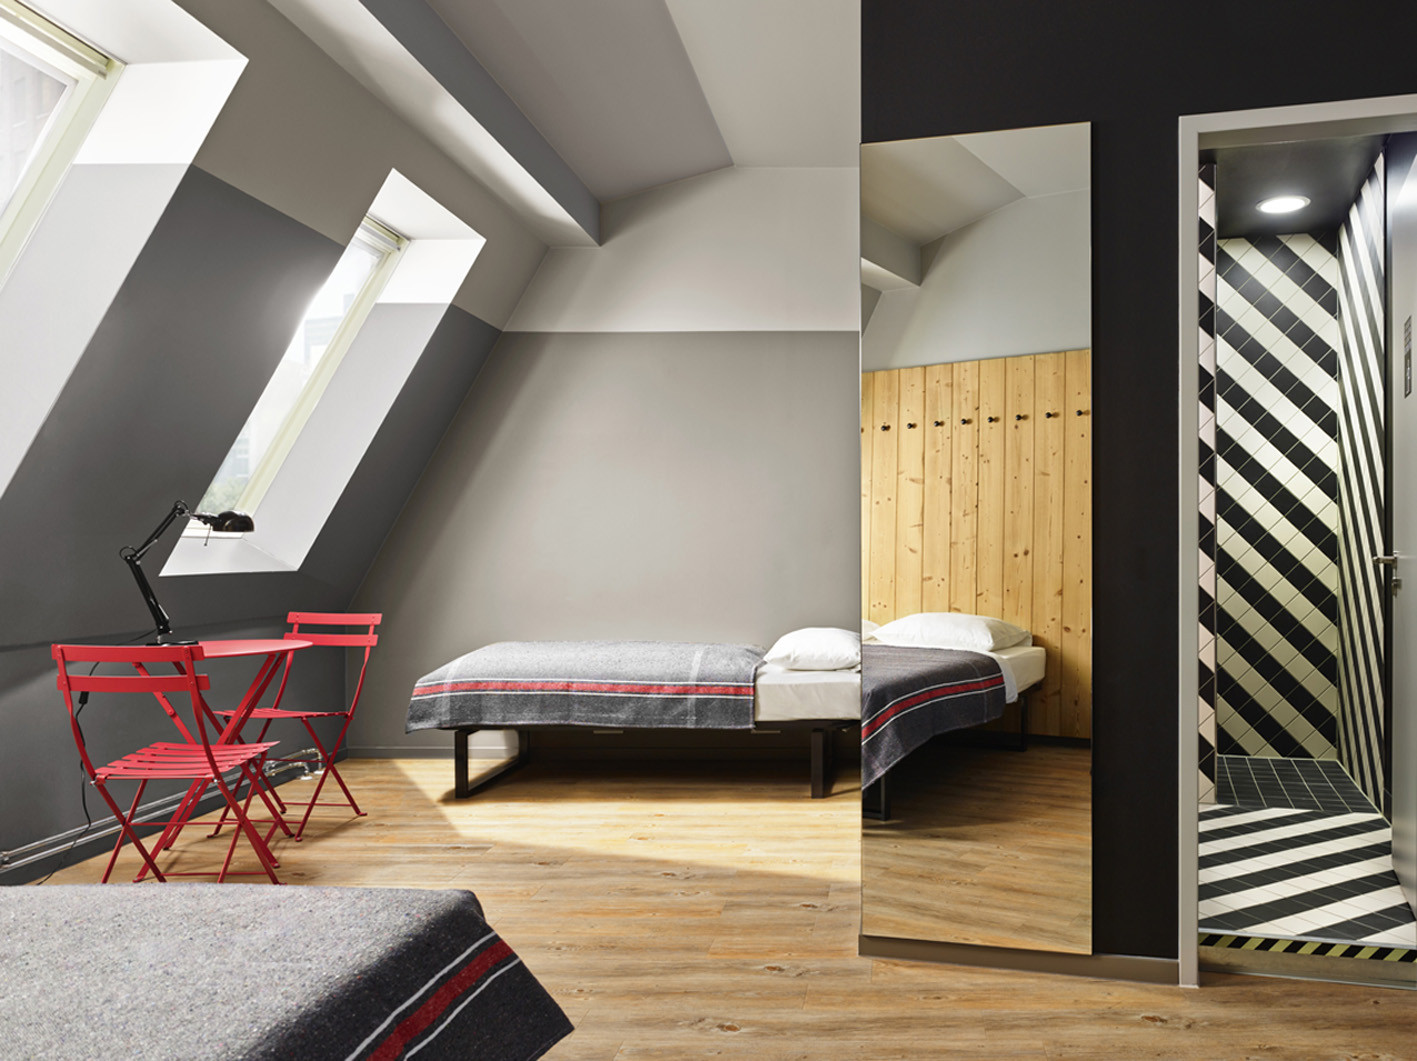 gallery of generator berlin mitte ester bruzkus. Black Bedroom Furniture Sets. Home Design Ideas